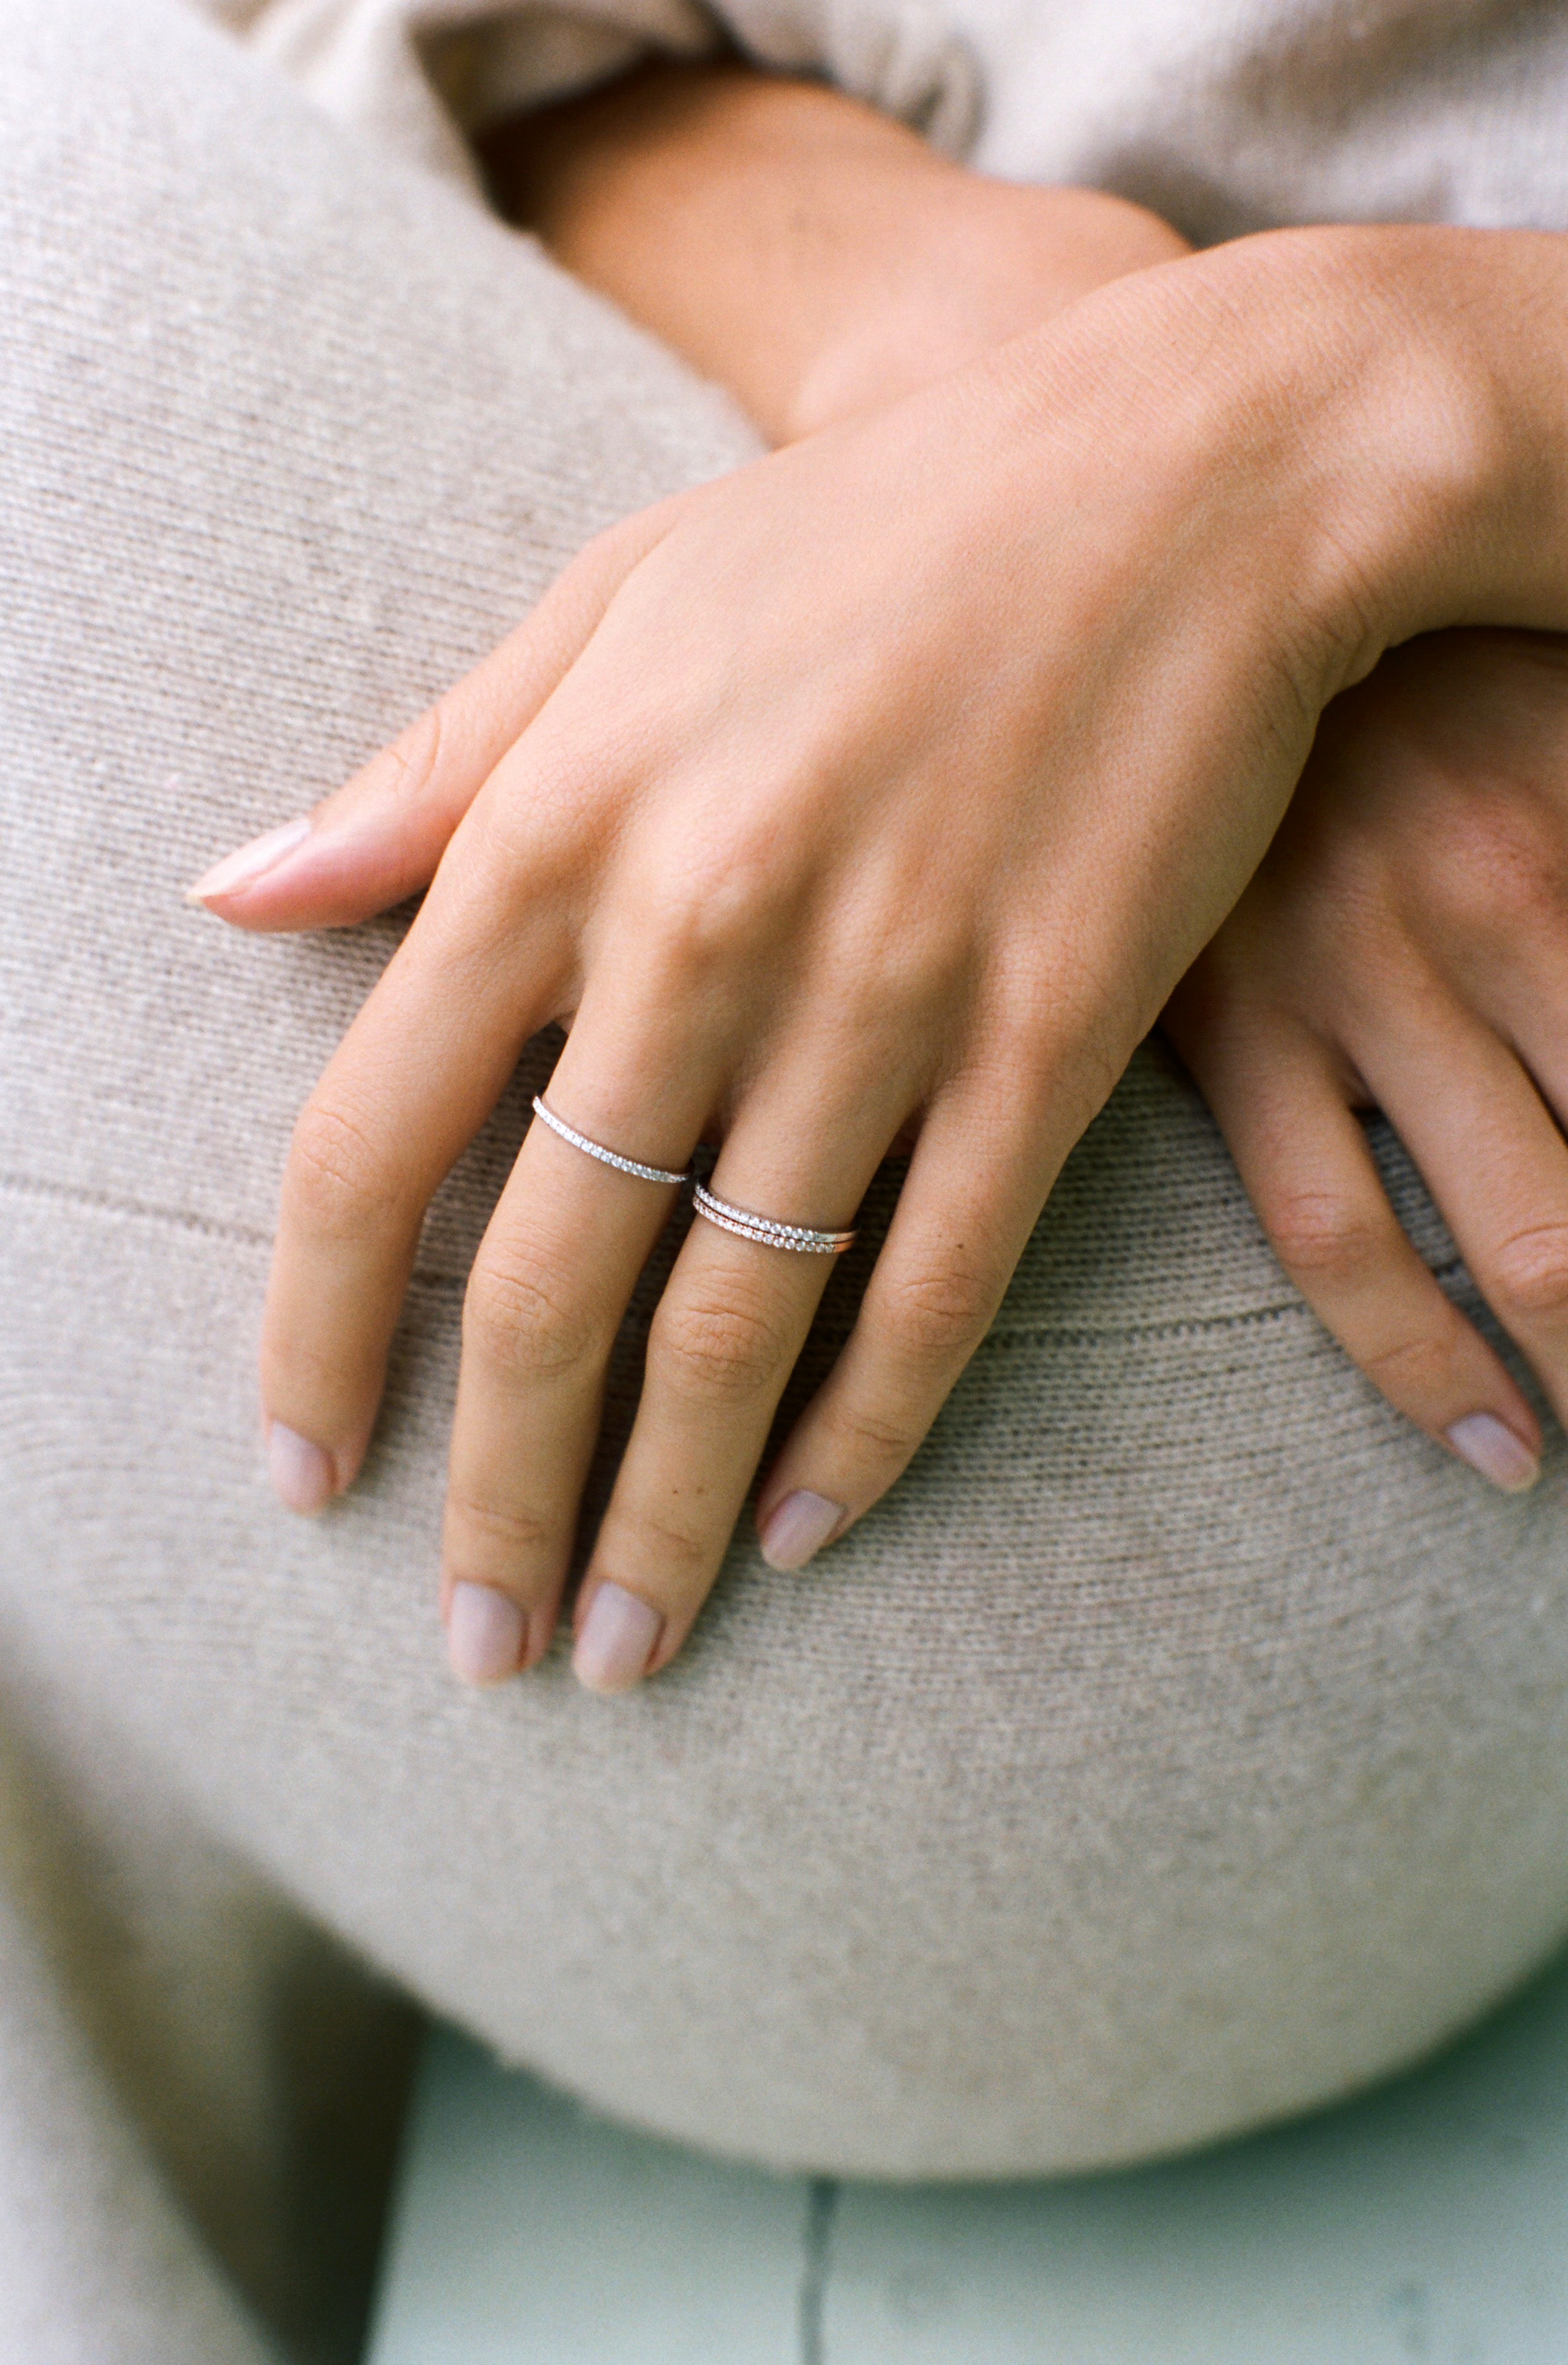 jewelry giveaway noemie petite fine noemie diamond bands styles york